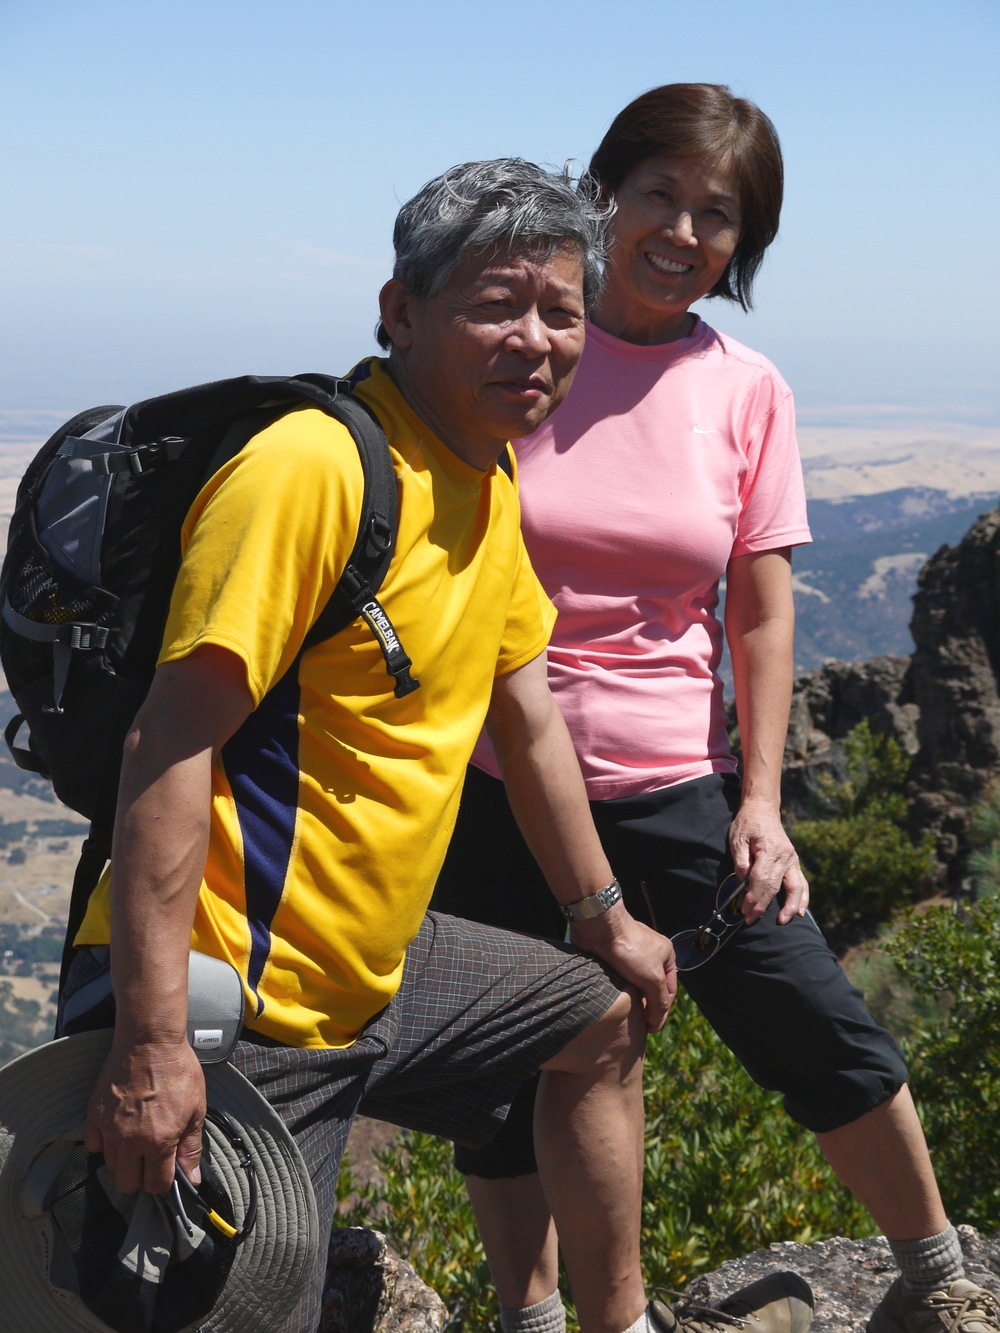 Masato and Yoko Suzuki grin and bear the trudge up North Peak Trail, Mt. Diablo.